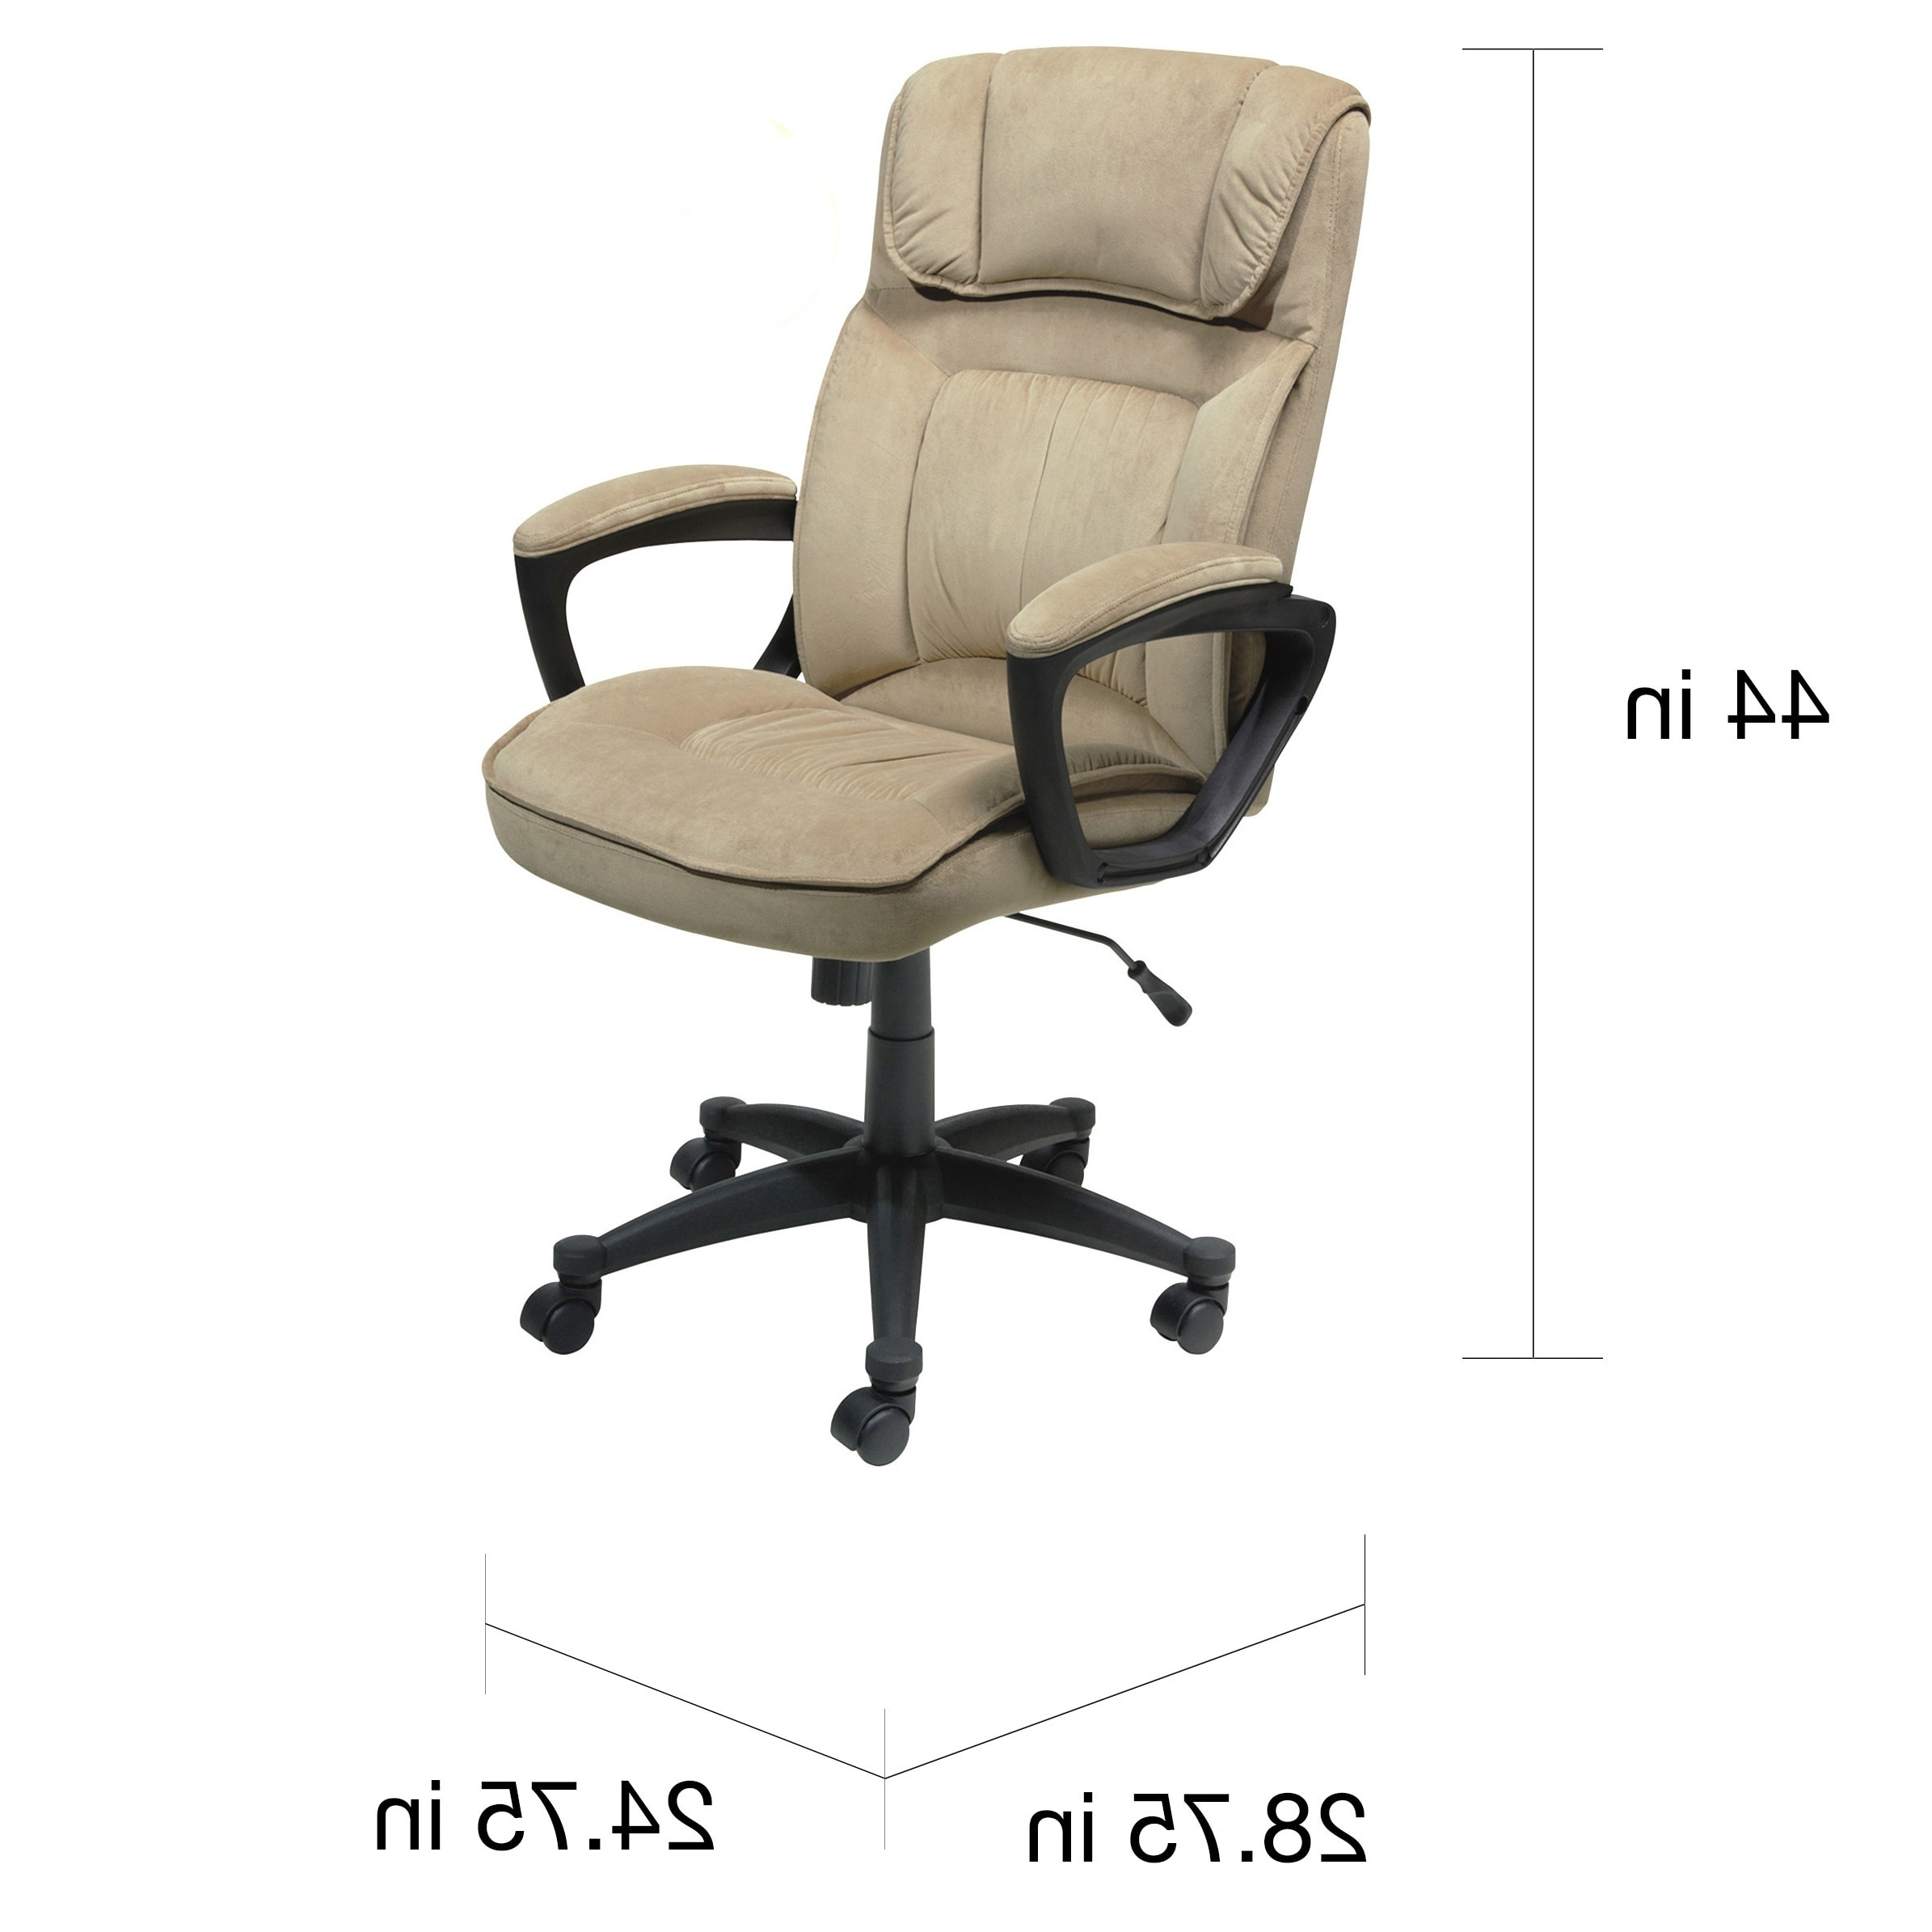 Executive Office Chairs For Latest Serta Light Coffee Microfiber Executive Office Chair – Free (View 13 of 20)